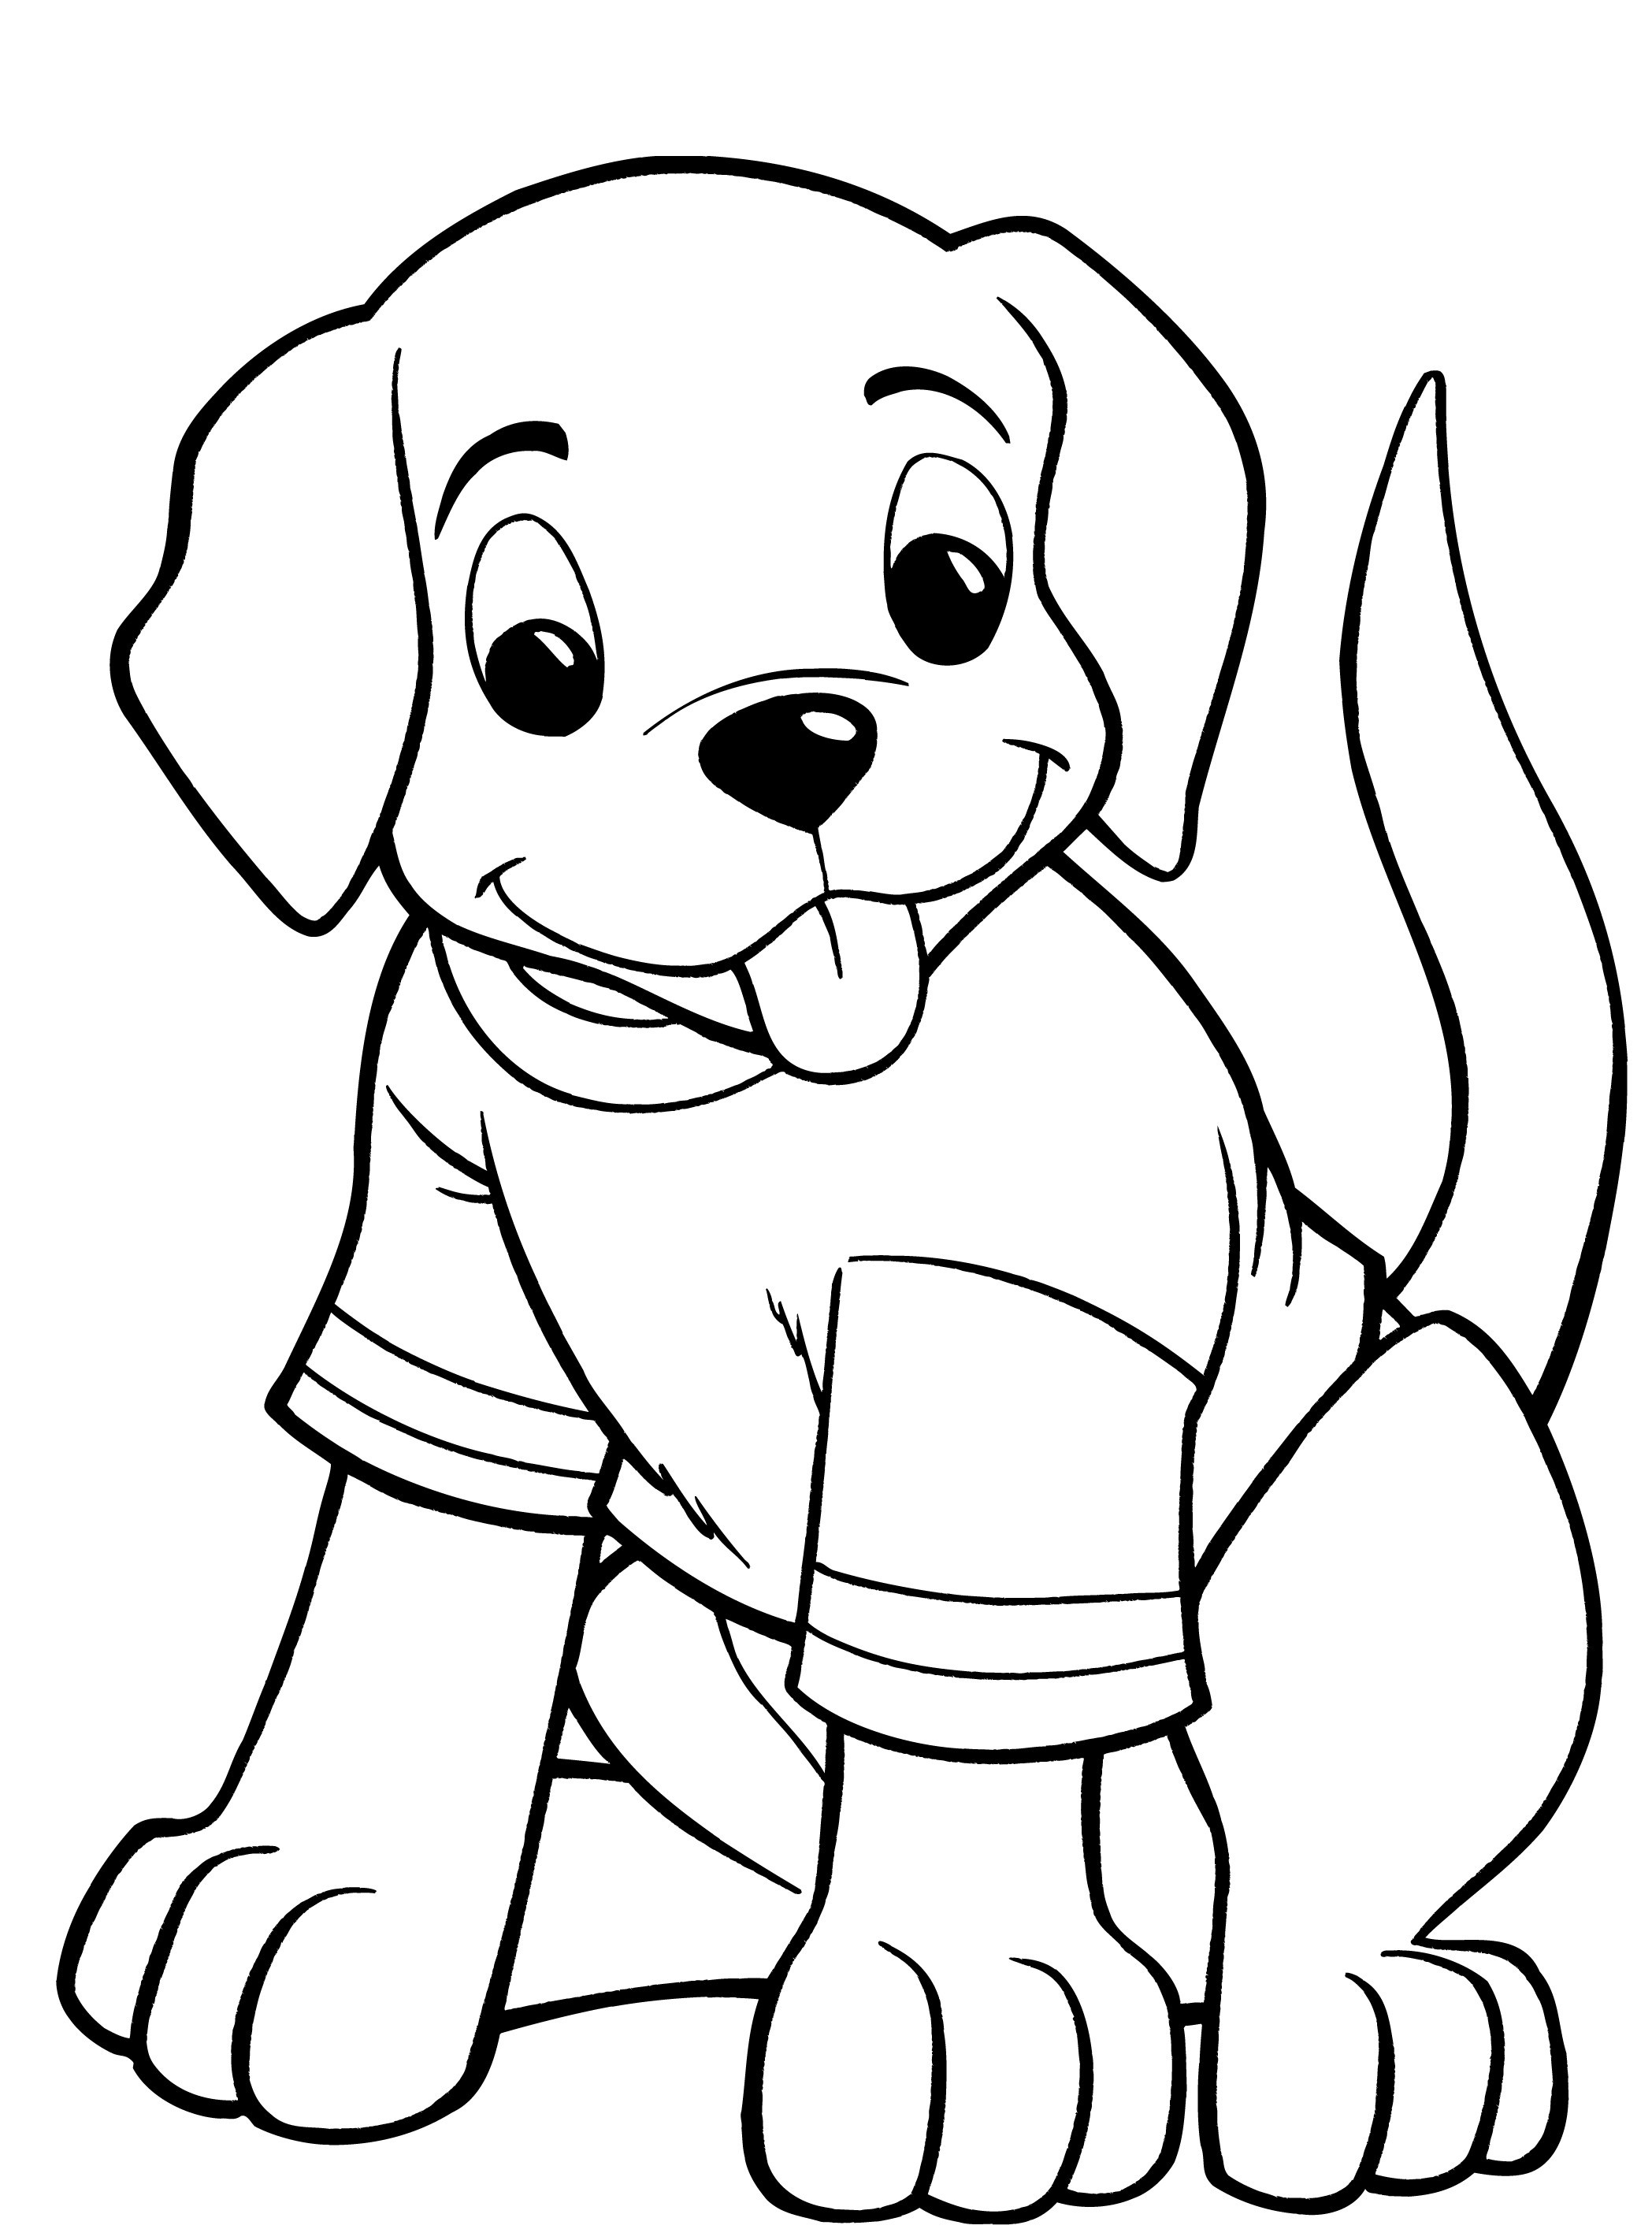 dog color sheets cute dog coloring pages to download and print for free dog color sheets